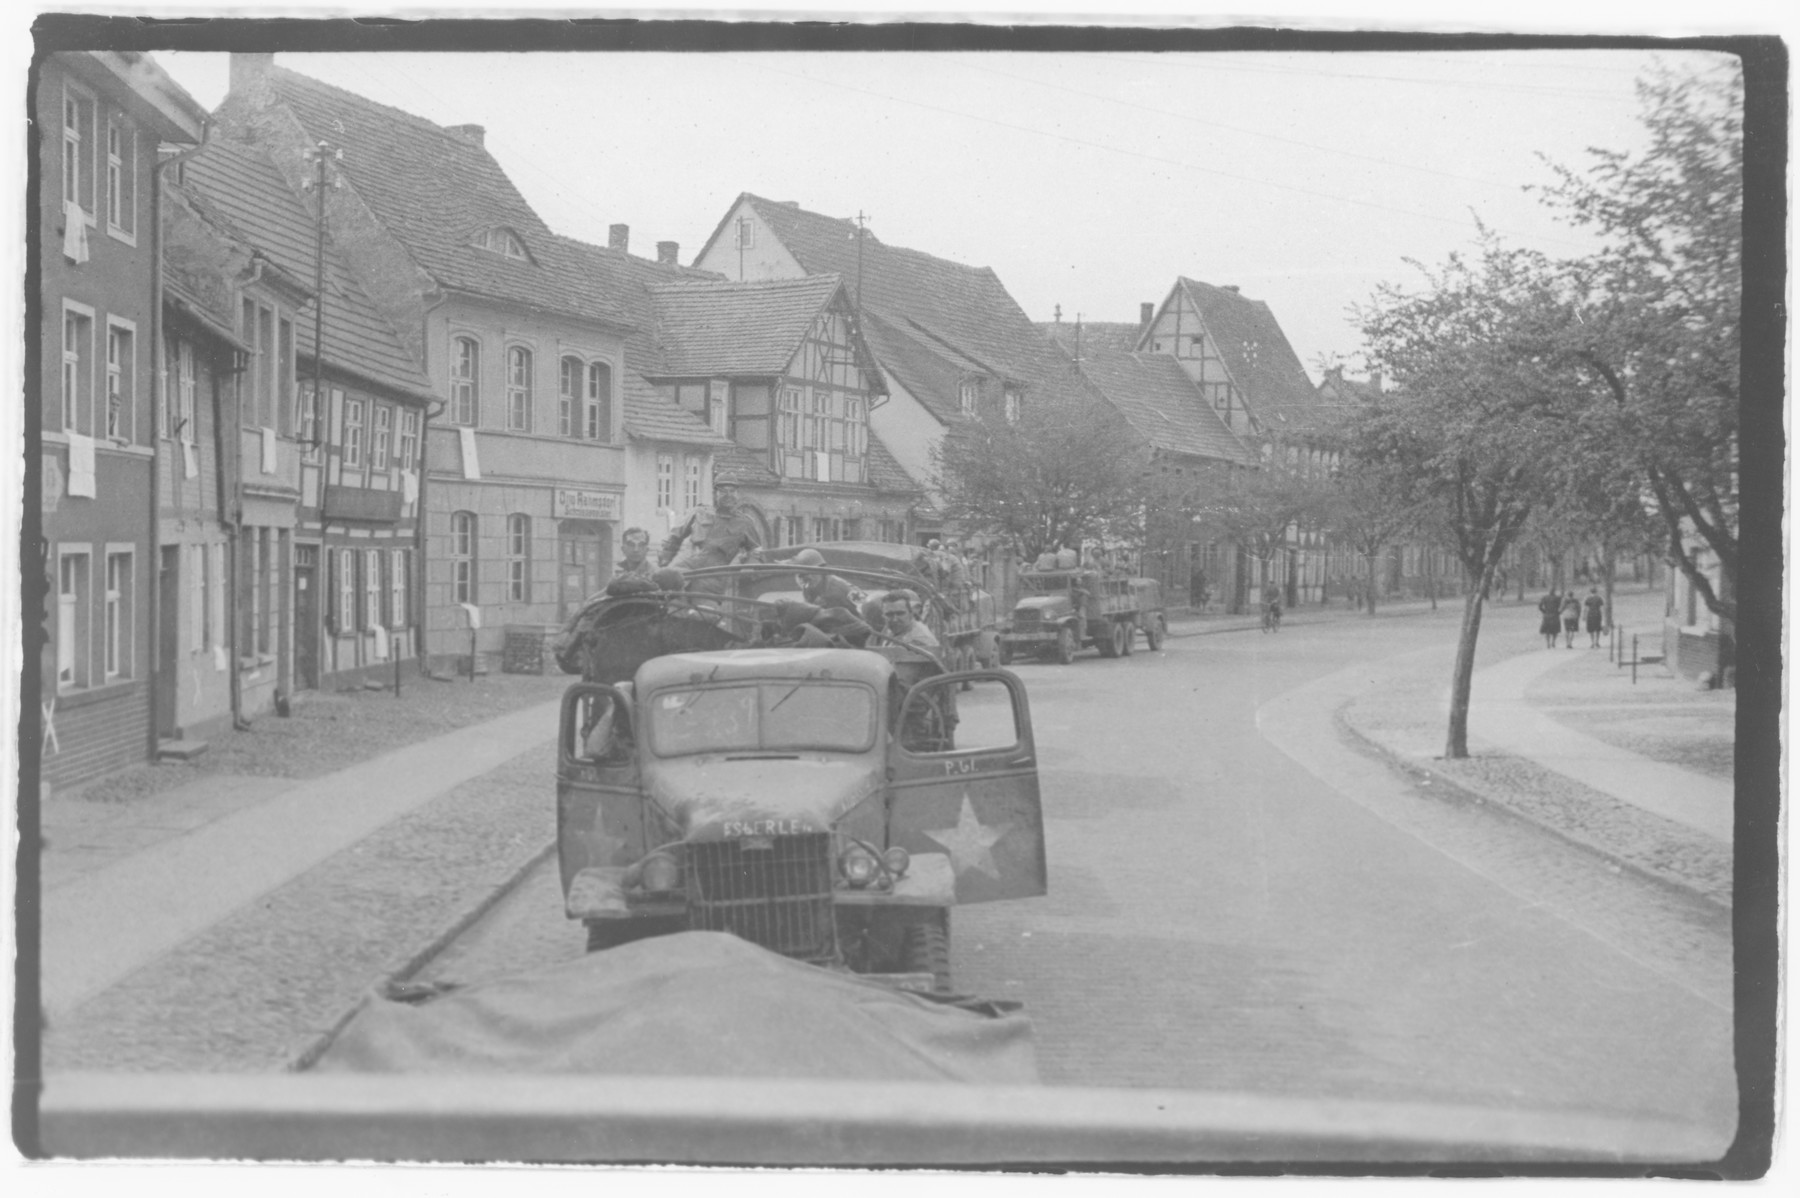 US Army officers from the 91st Evacuation Hospital Unit drive through a German town.